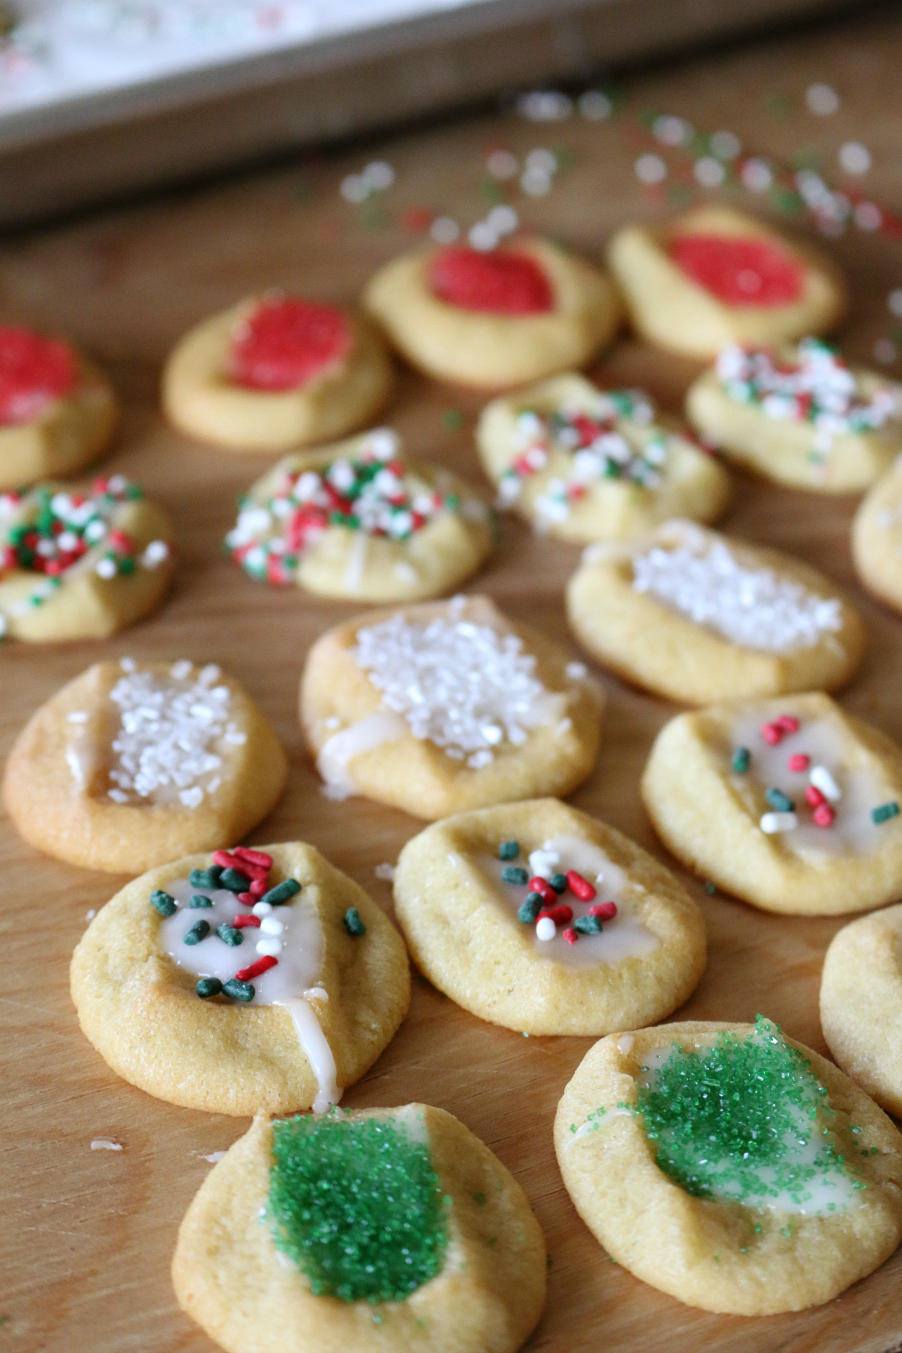 Seriously, when you have a cookie emergency - this recipe fits the bill! The almond glaze makes these taste homemade.